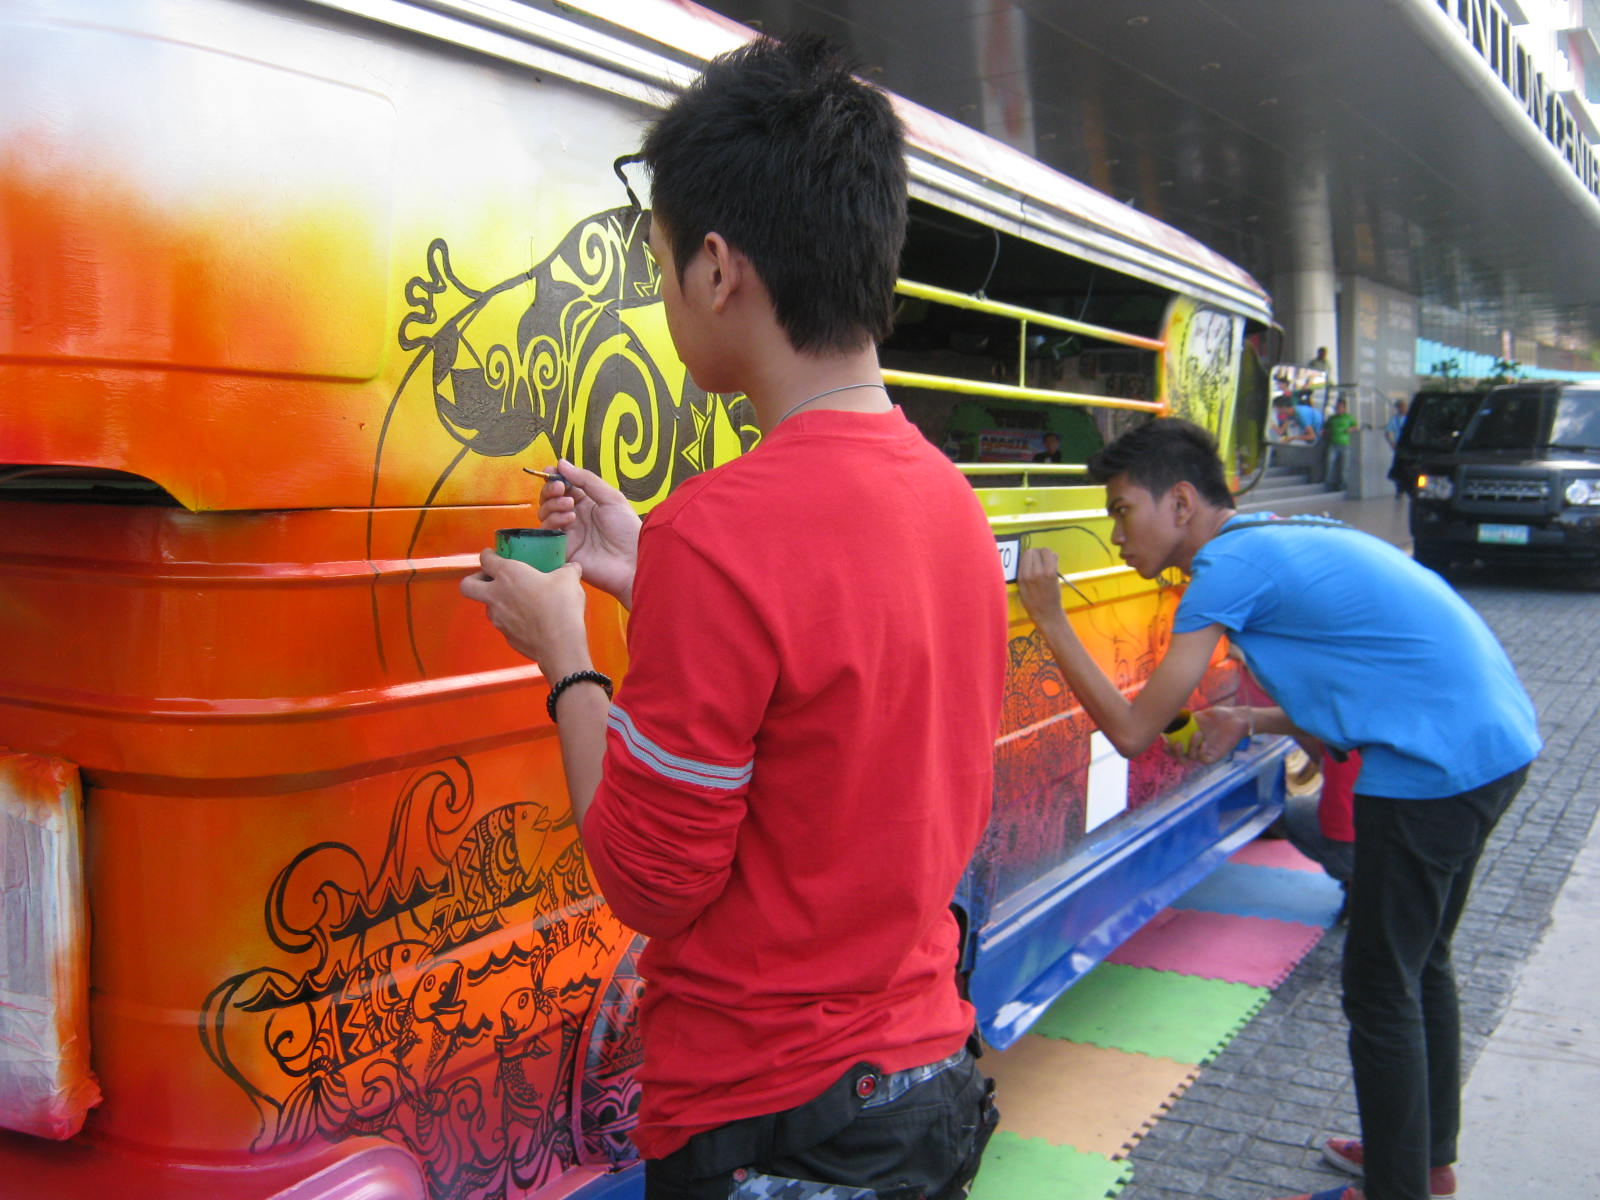 the art of jeepney riding the Such is the story of a jeepney (popular public transportation/passenger bus)  driver from iloilo, philippines, who has been secretly in love with a woman for.